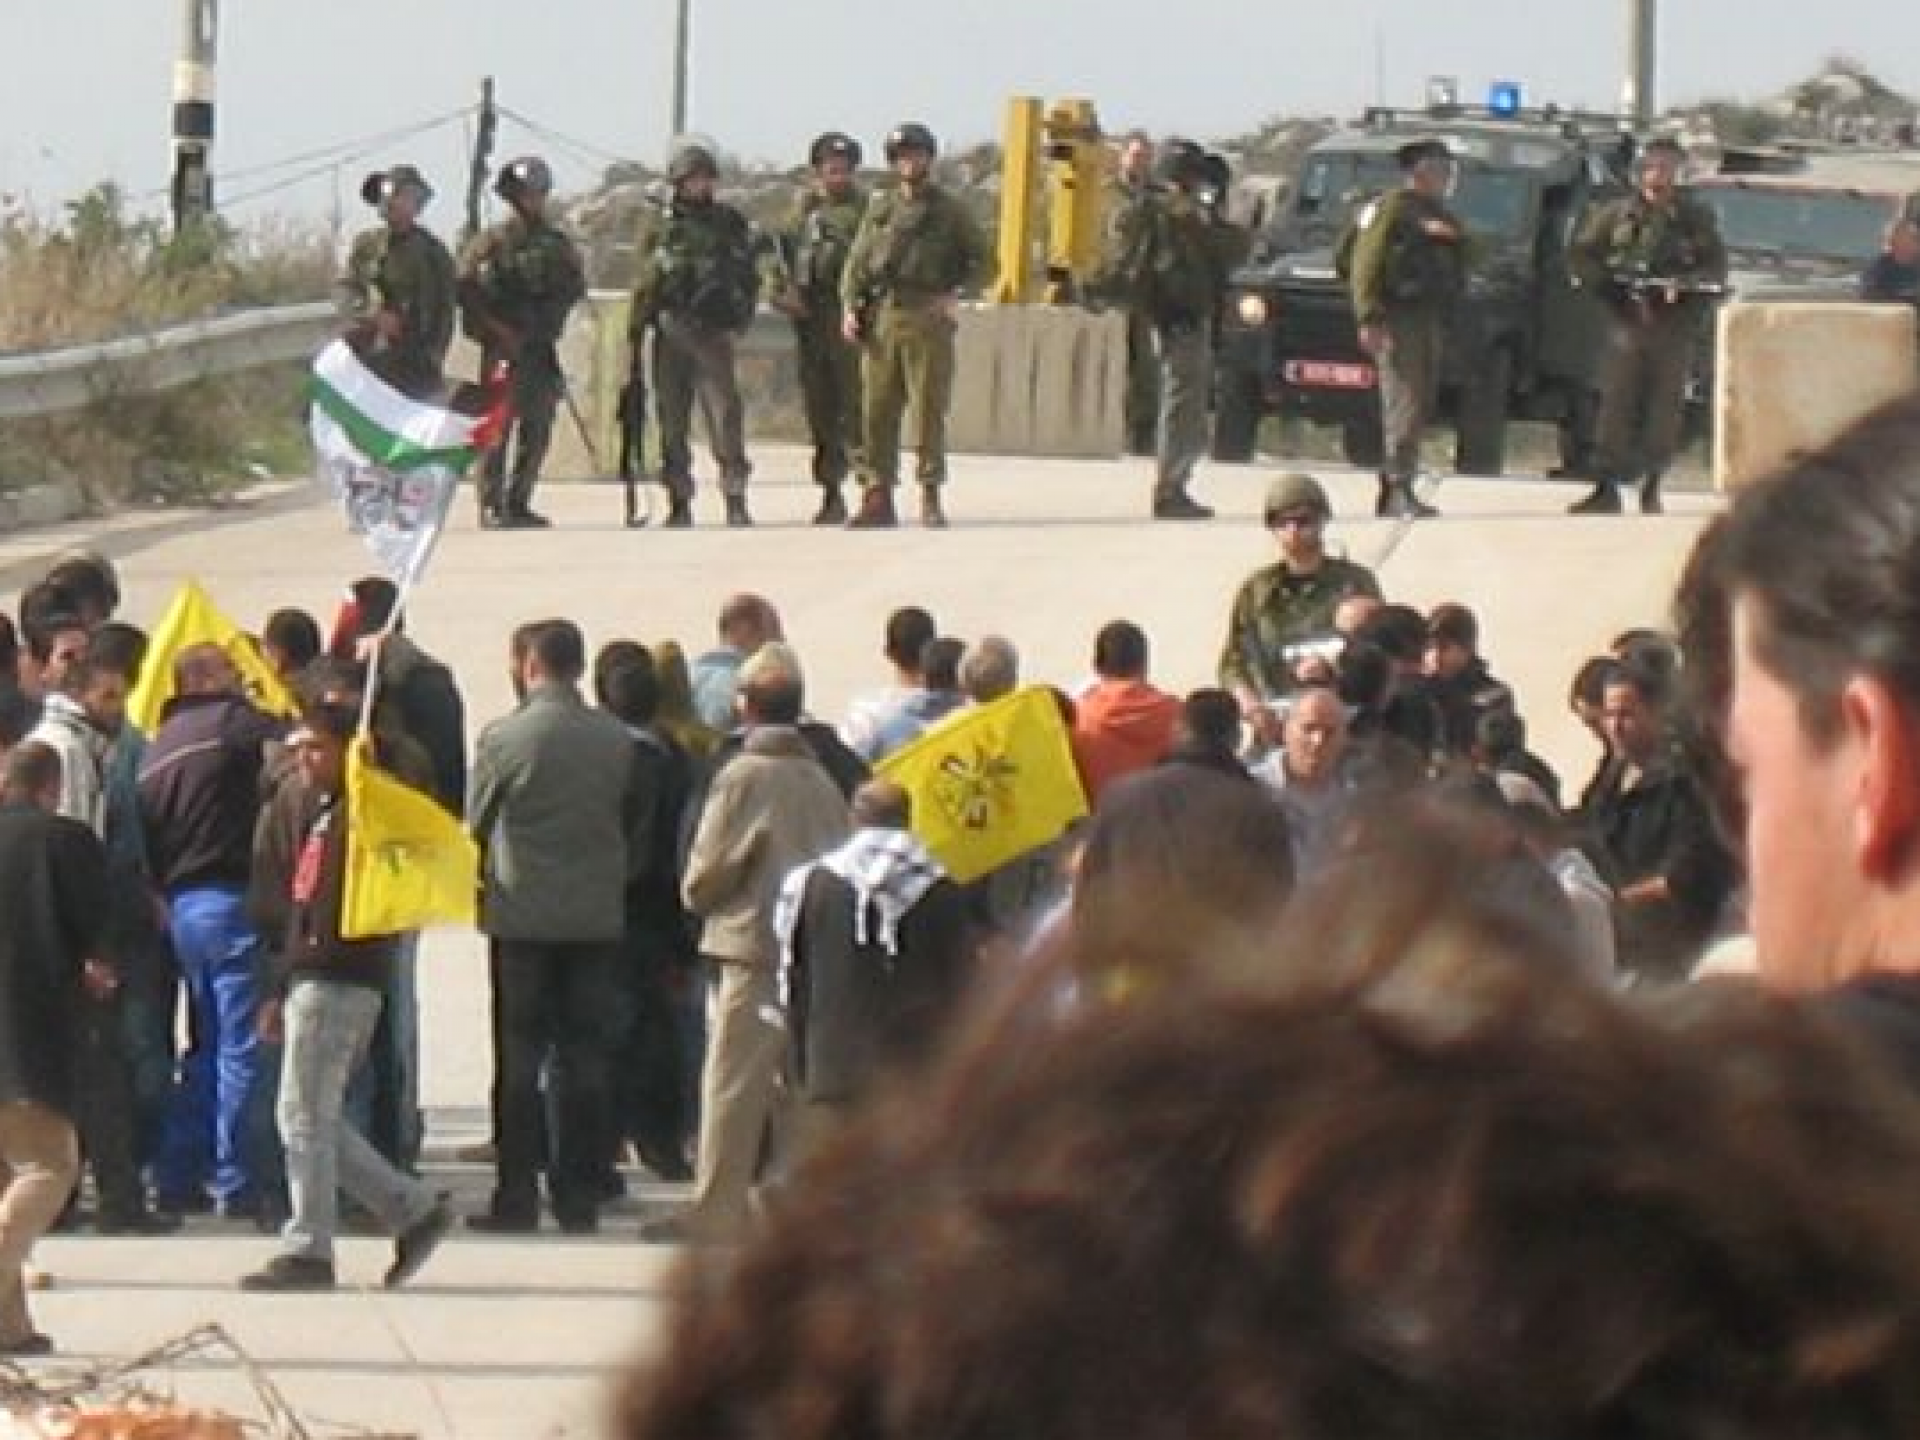 Soldiers and Demonstrators in Tense Confrontation